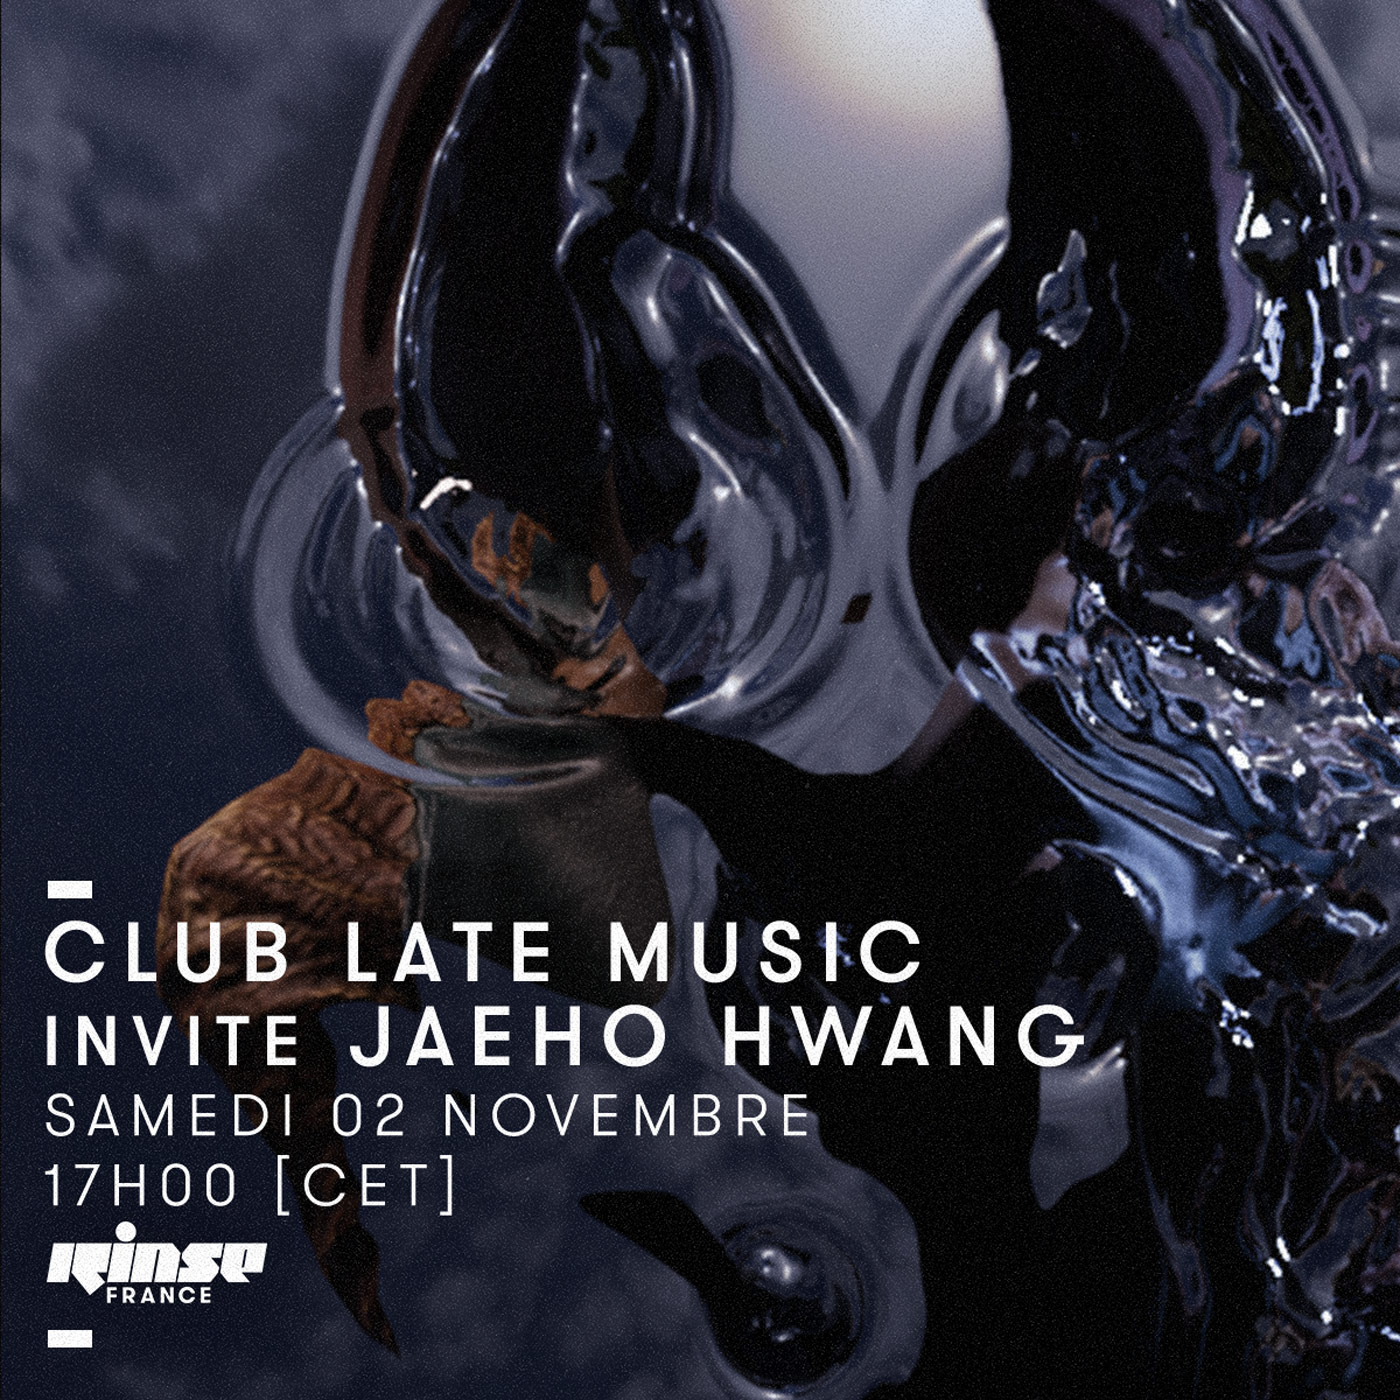 13 collide24 clm club late music - The open-source and collaborative music label Club Late Music explores new ways of producing and promoting music